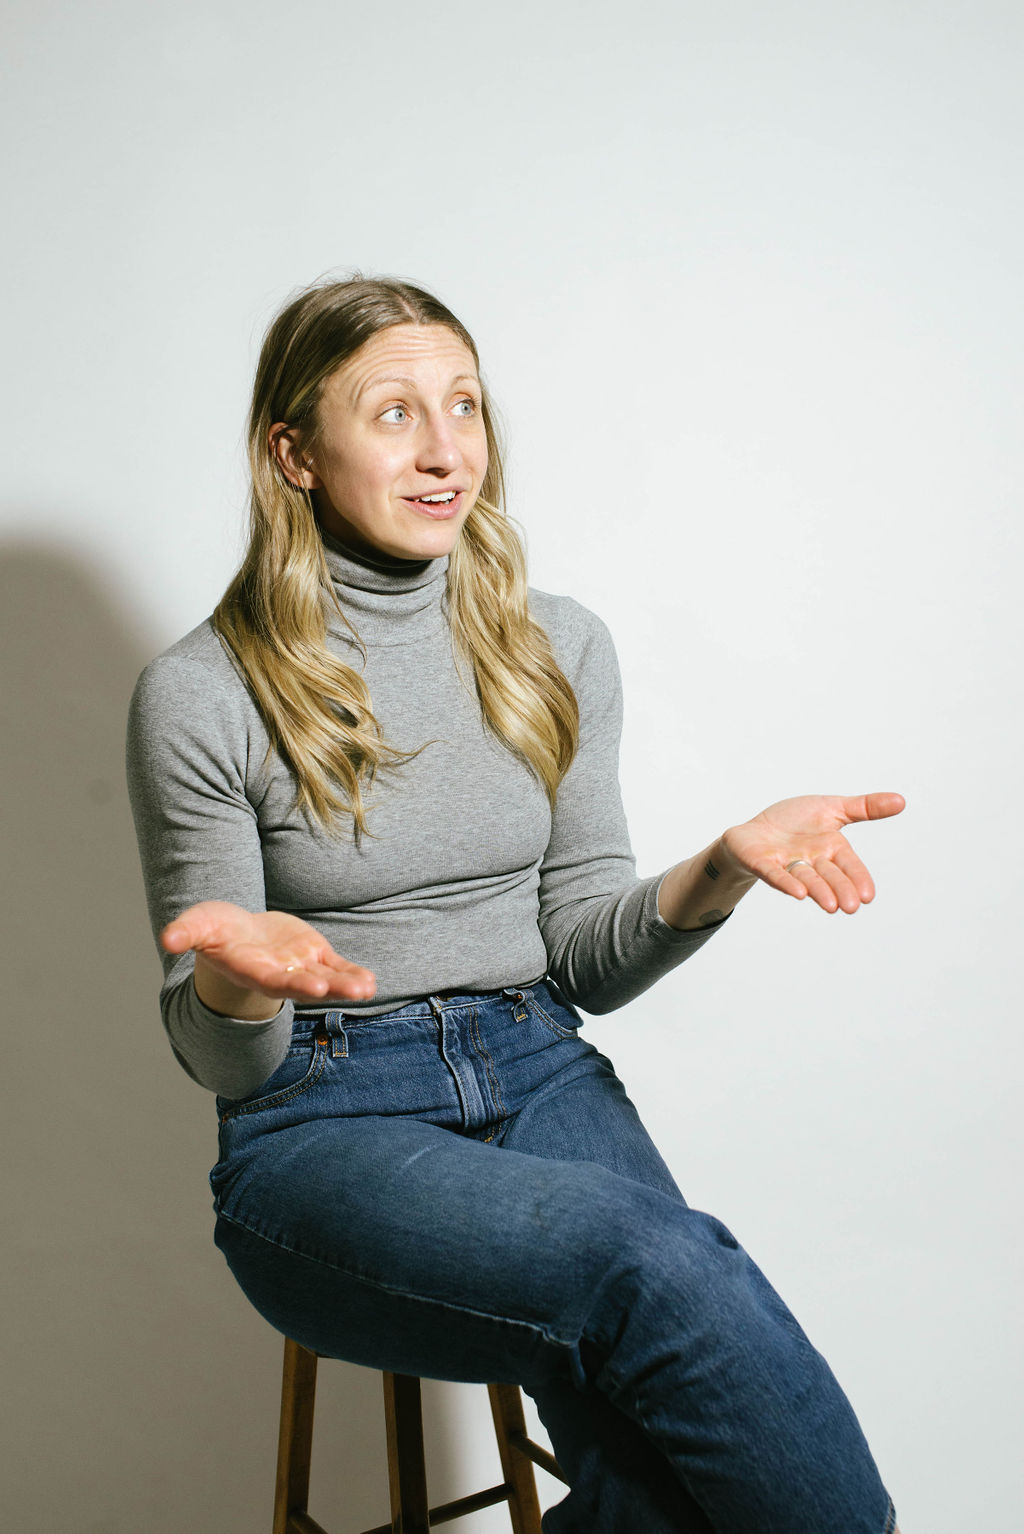 blonde woman wearing grey turtleneck and jeans sits on a stool looking up with her hands open palms up questioningly